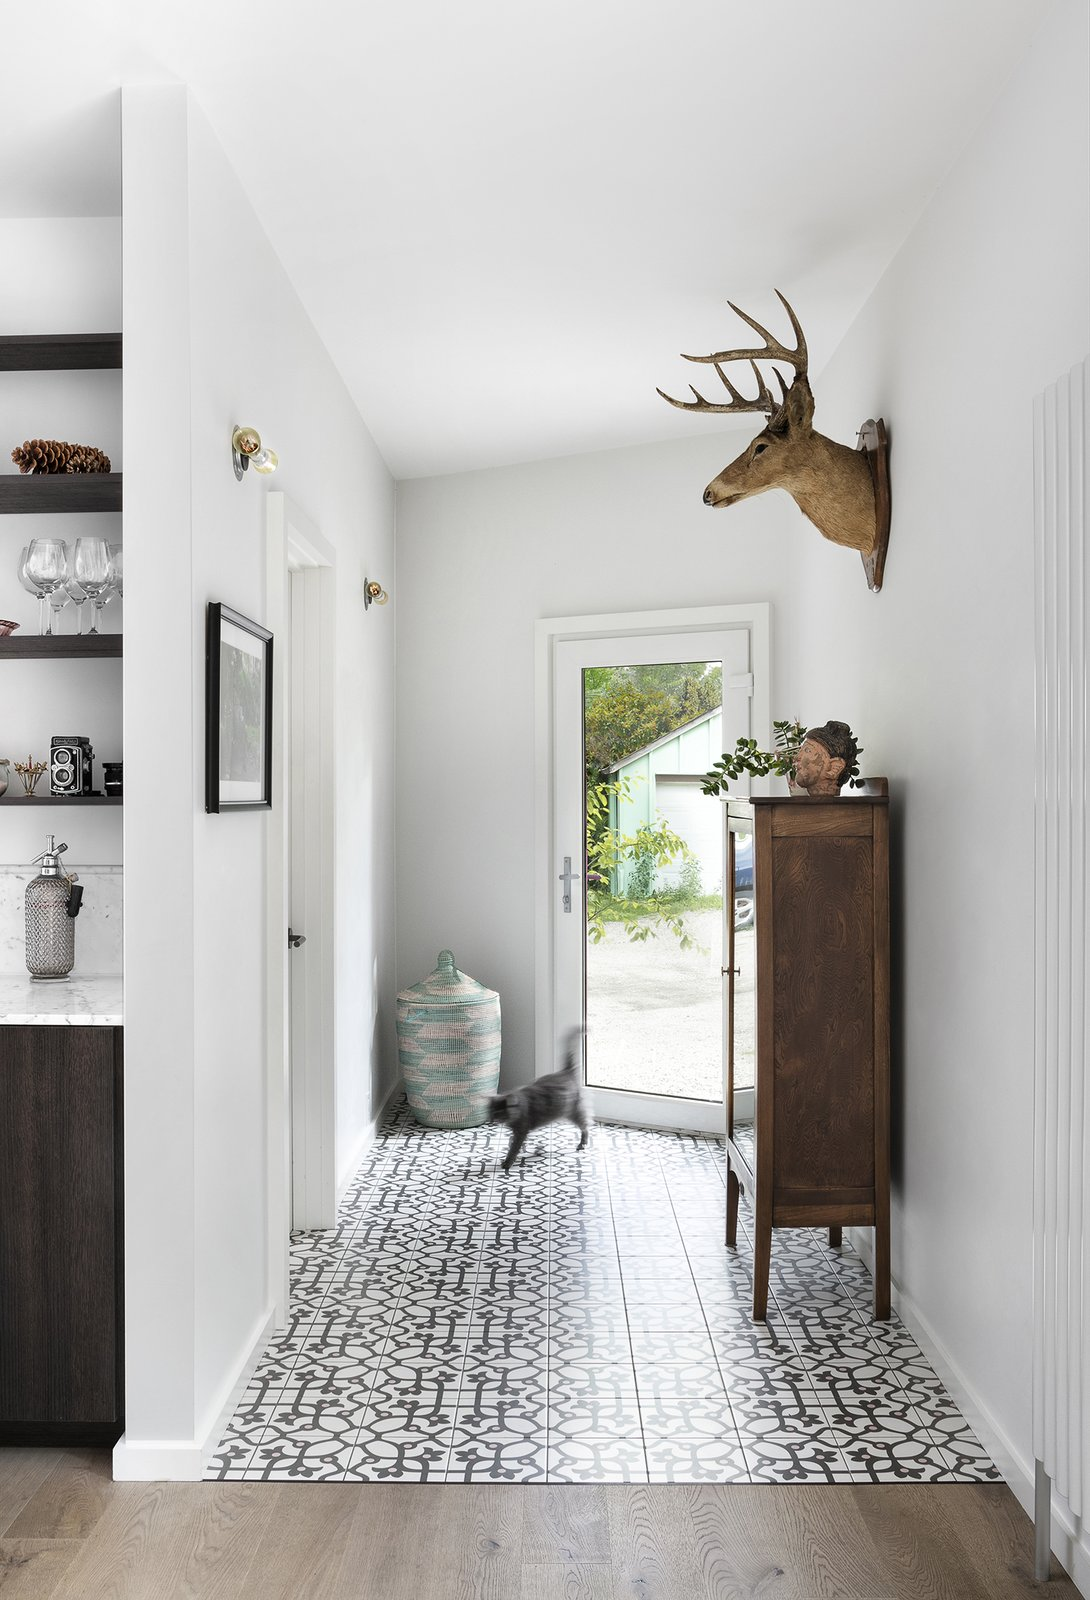 Hallway and Medium Hardwood Floor Jujol Basalto porcelain tiles, sourced from Mettro Source, line the floor just inside the front entry.  Photo 12 of 21 in 21 Cats Living in the Modern World from Quirky Toronto House Is Far From Color Shy